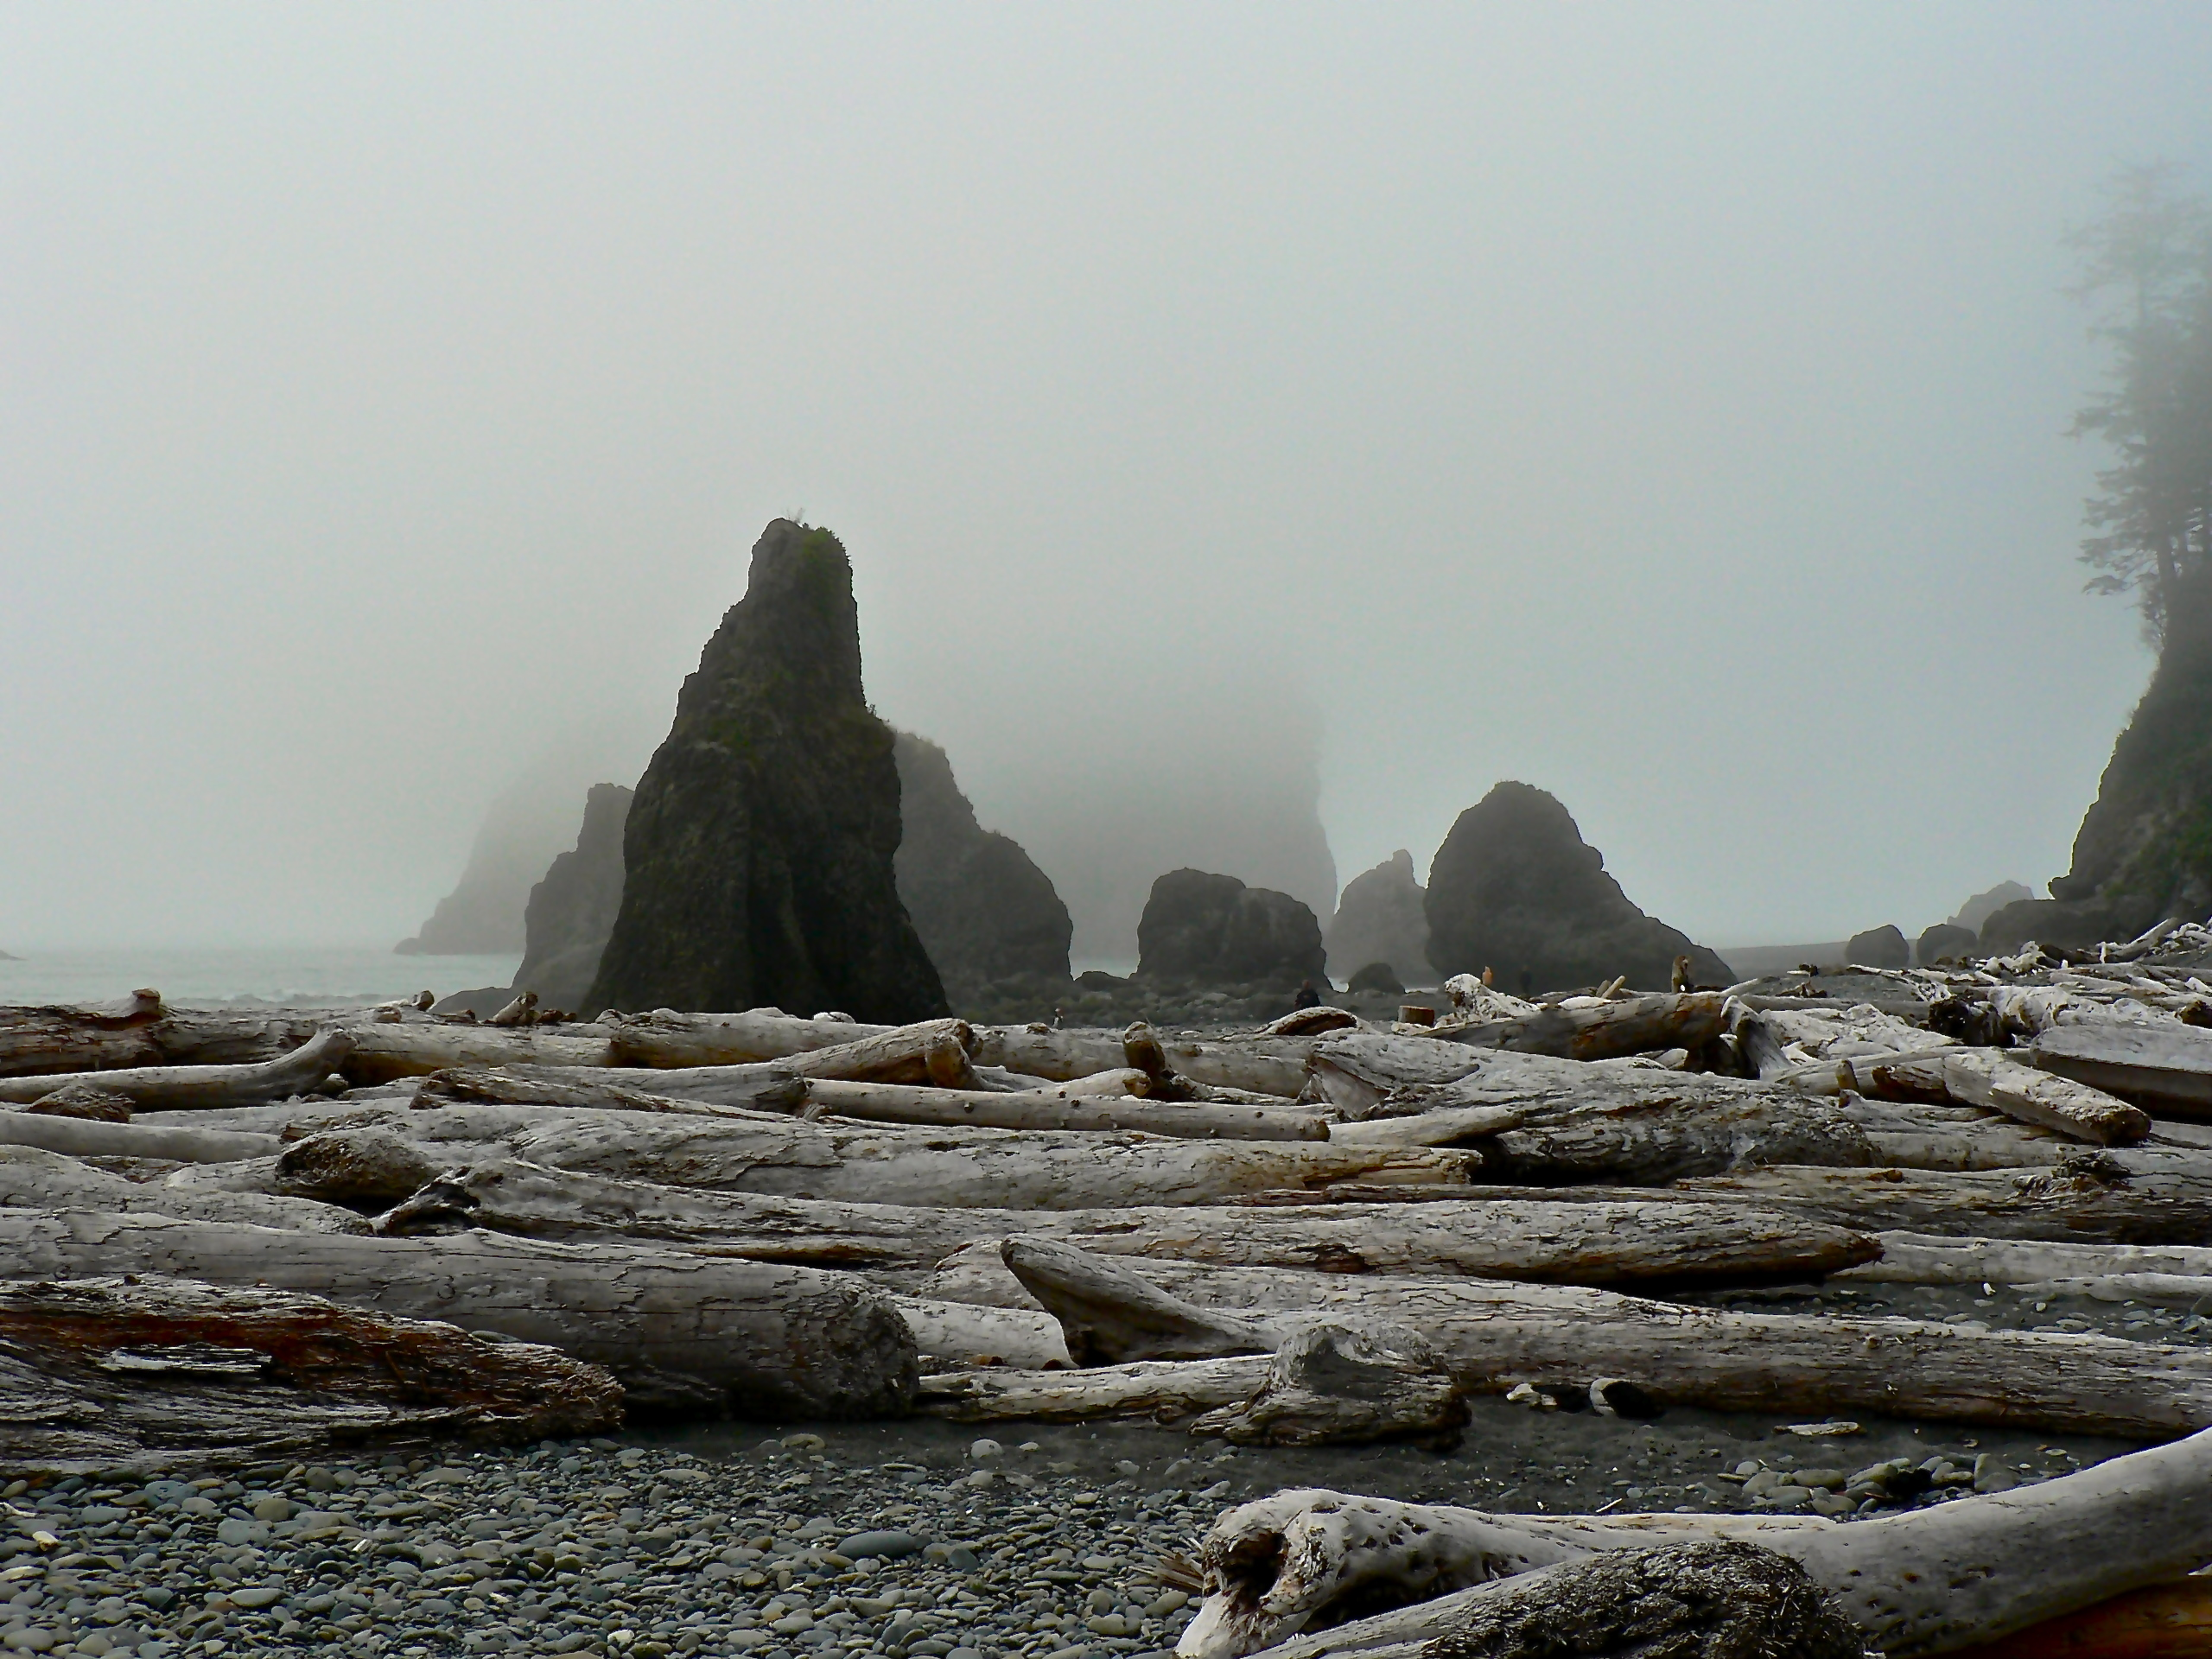 Mist covers the rock formations of Ruby Beach Olympic National Park in Washington